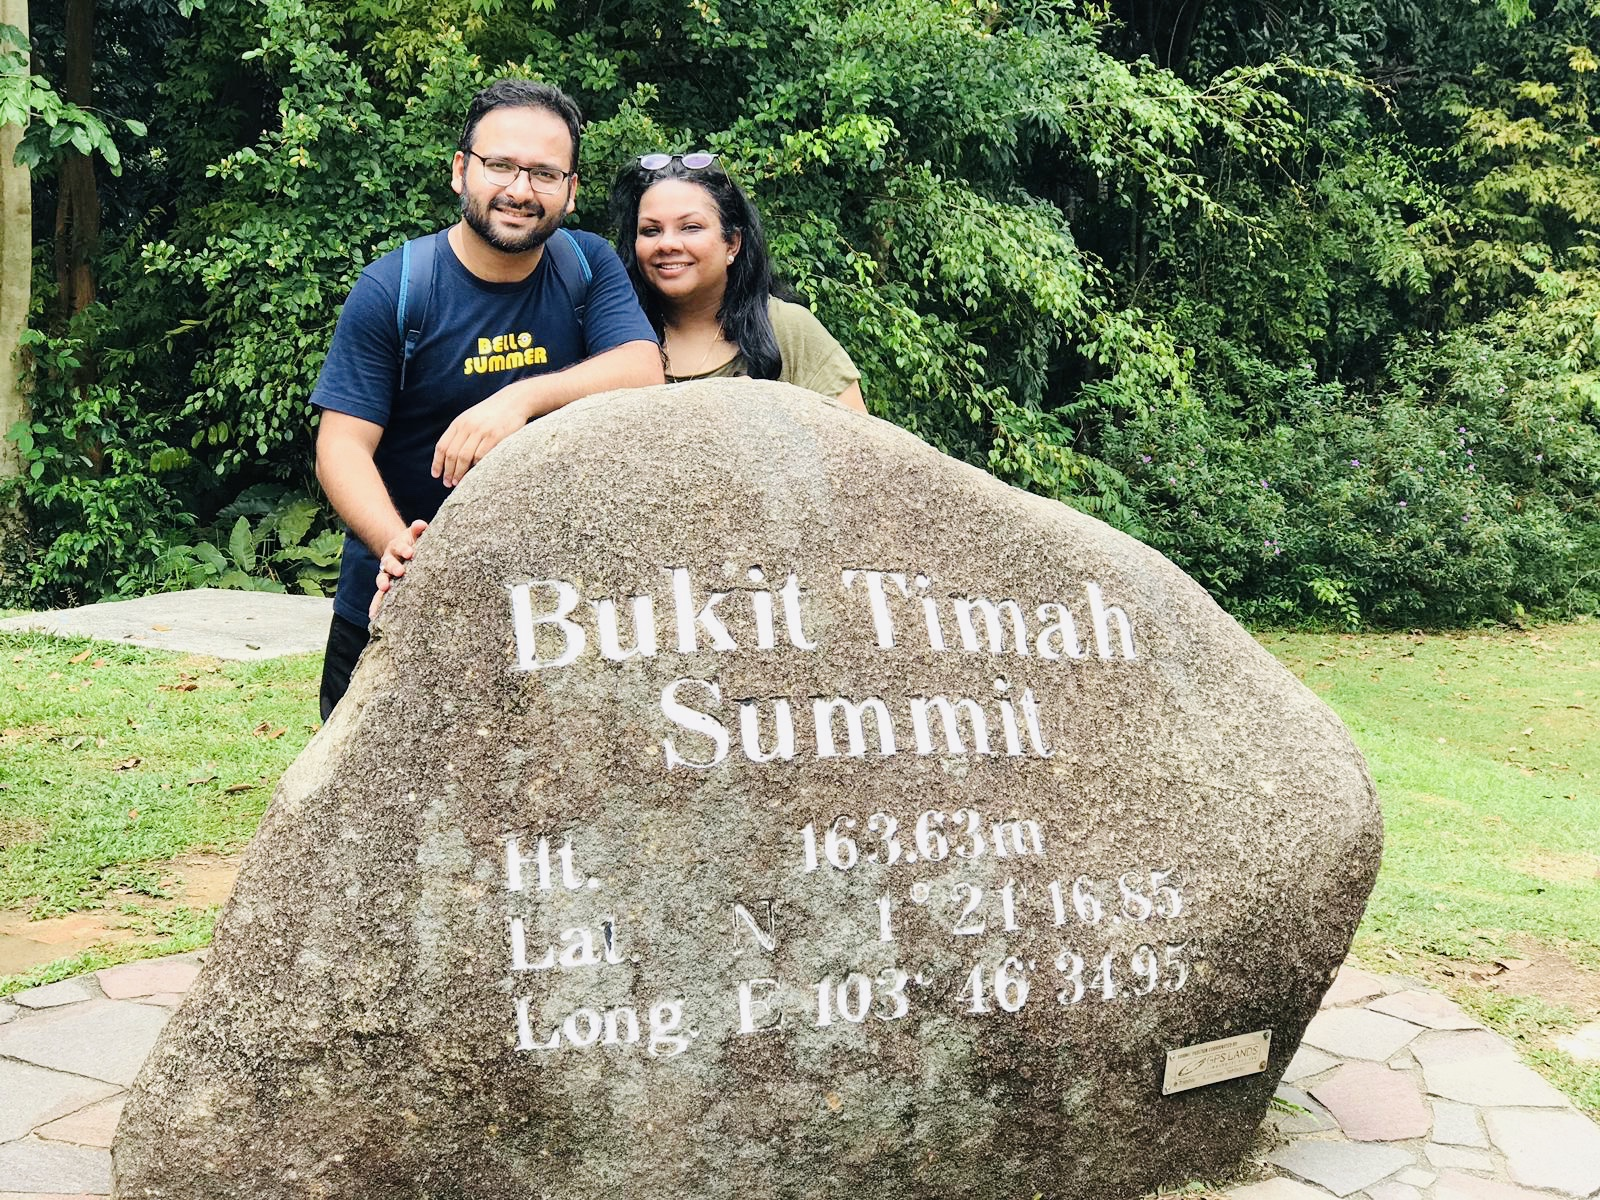 Us at the Summit of Bukit Timah